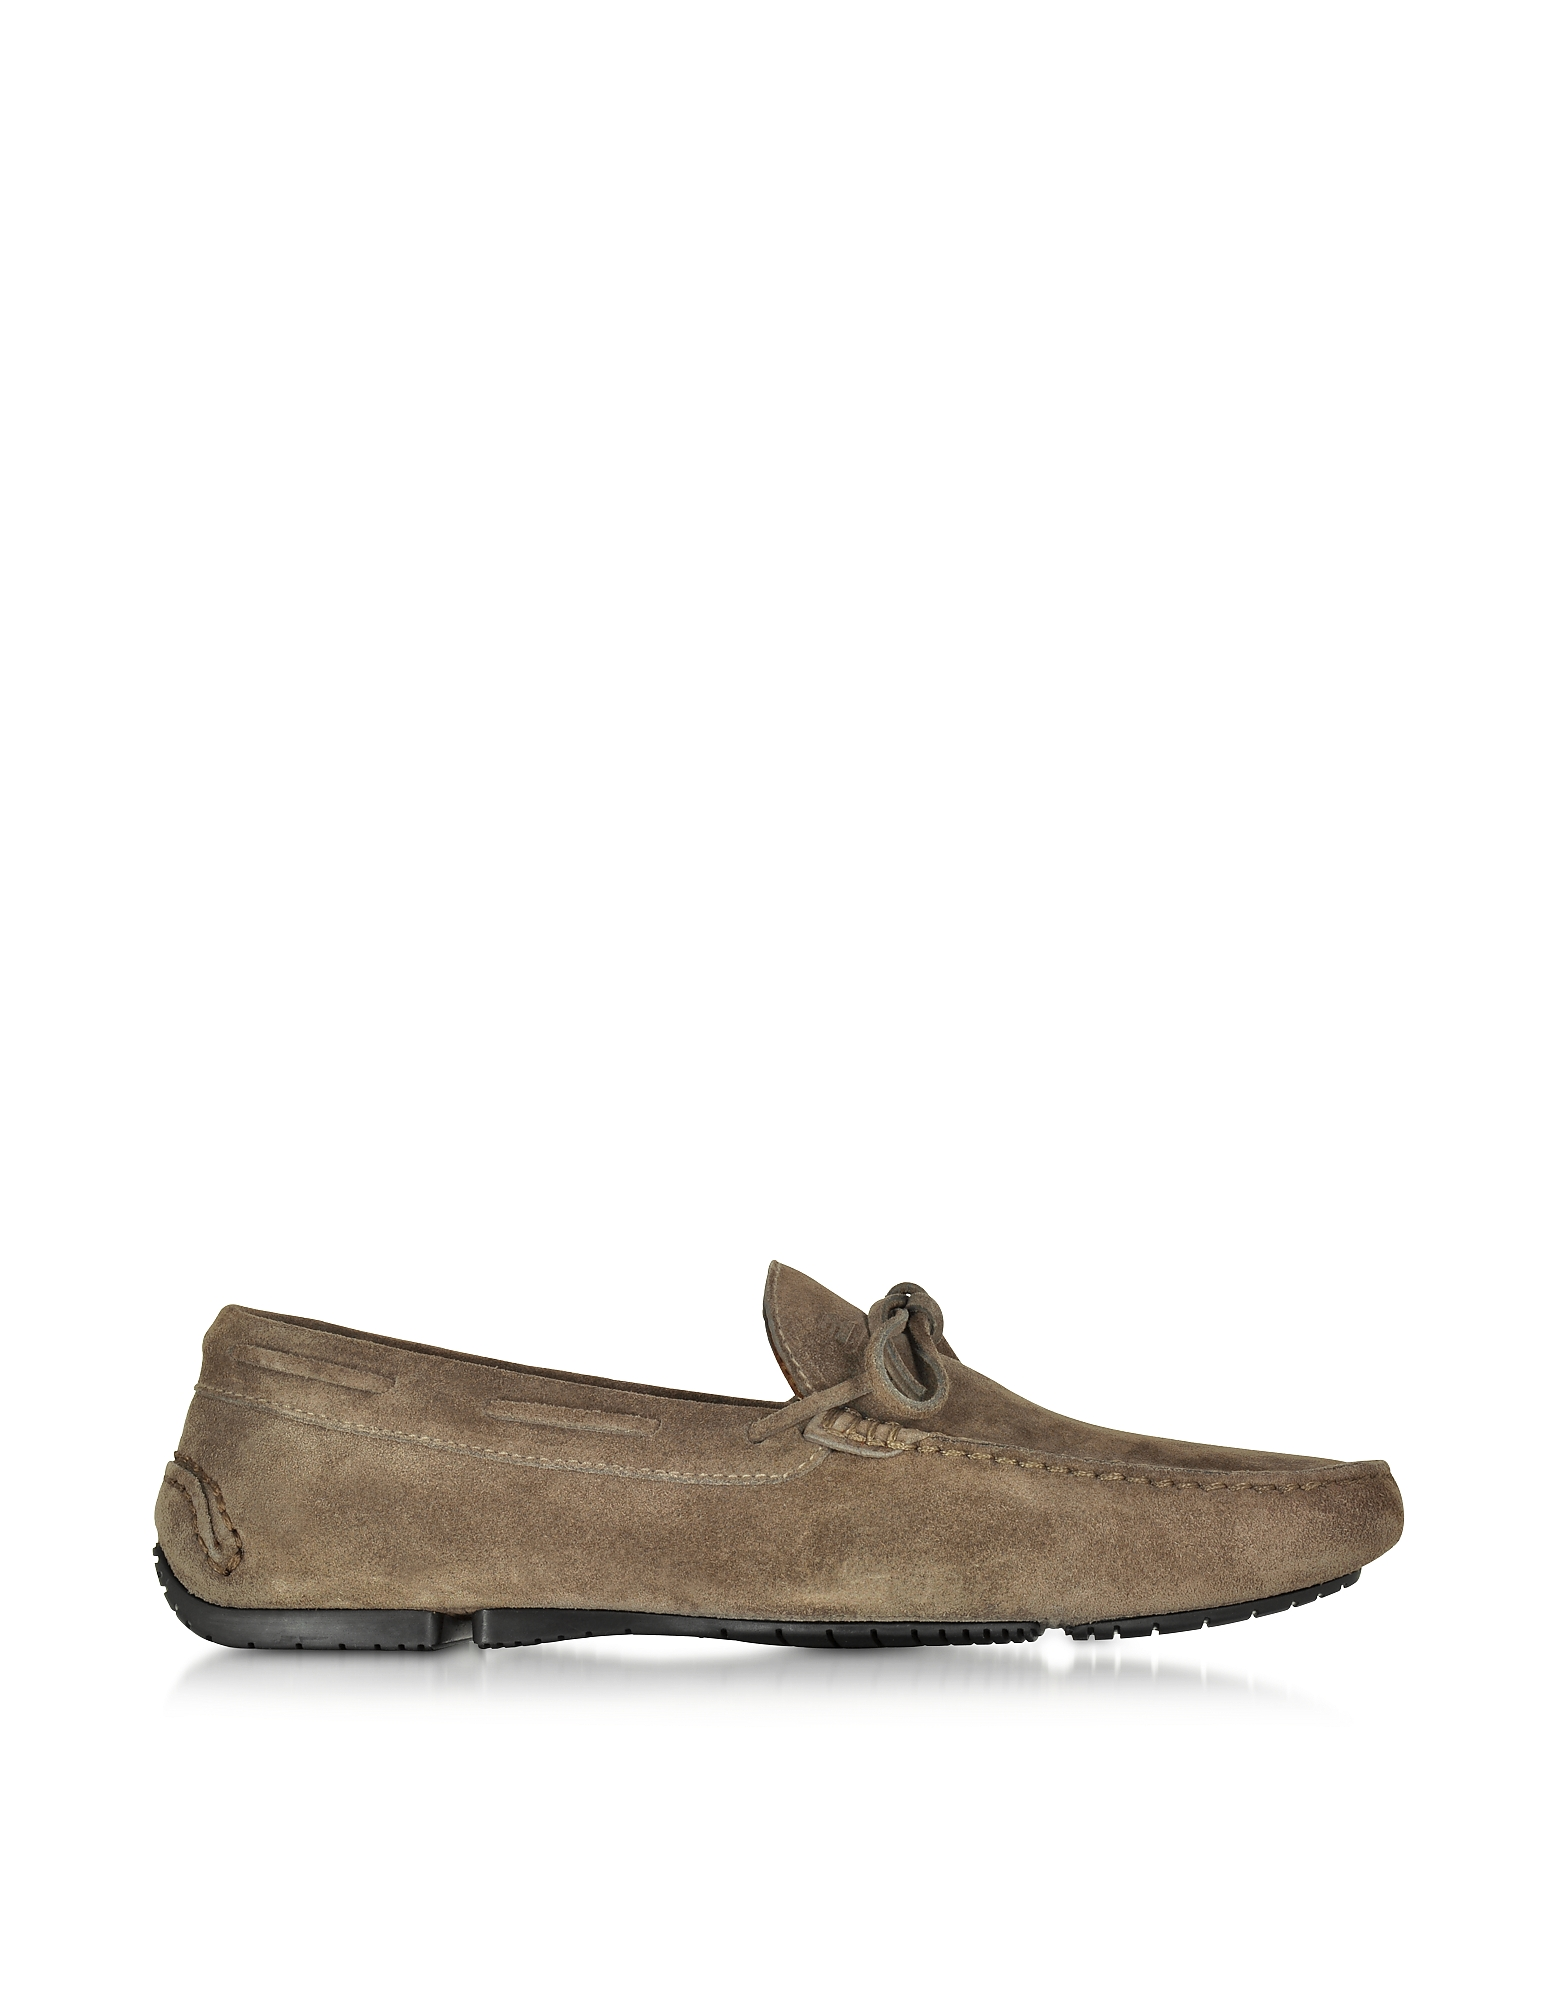 Fratelli Rossetti Shoes, Fango Suede Mocassino Shoe